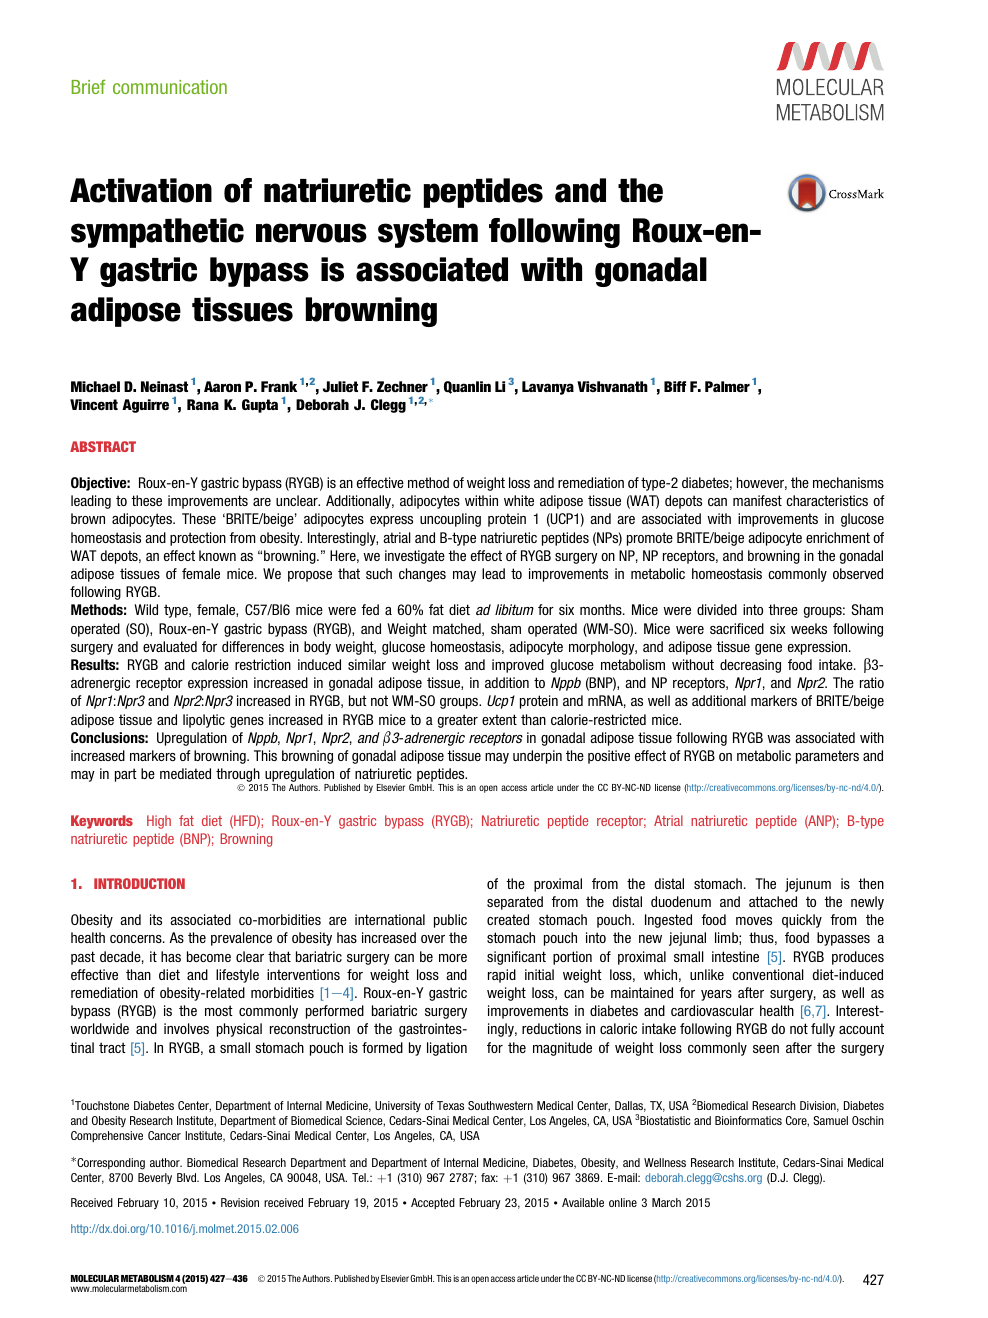 Activation of natriuretic peptides and the sympathetic